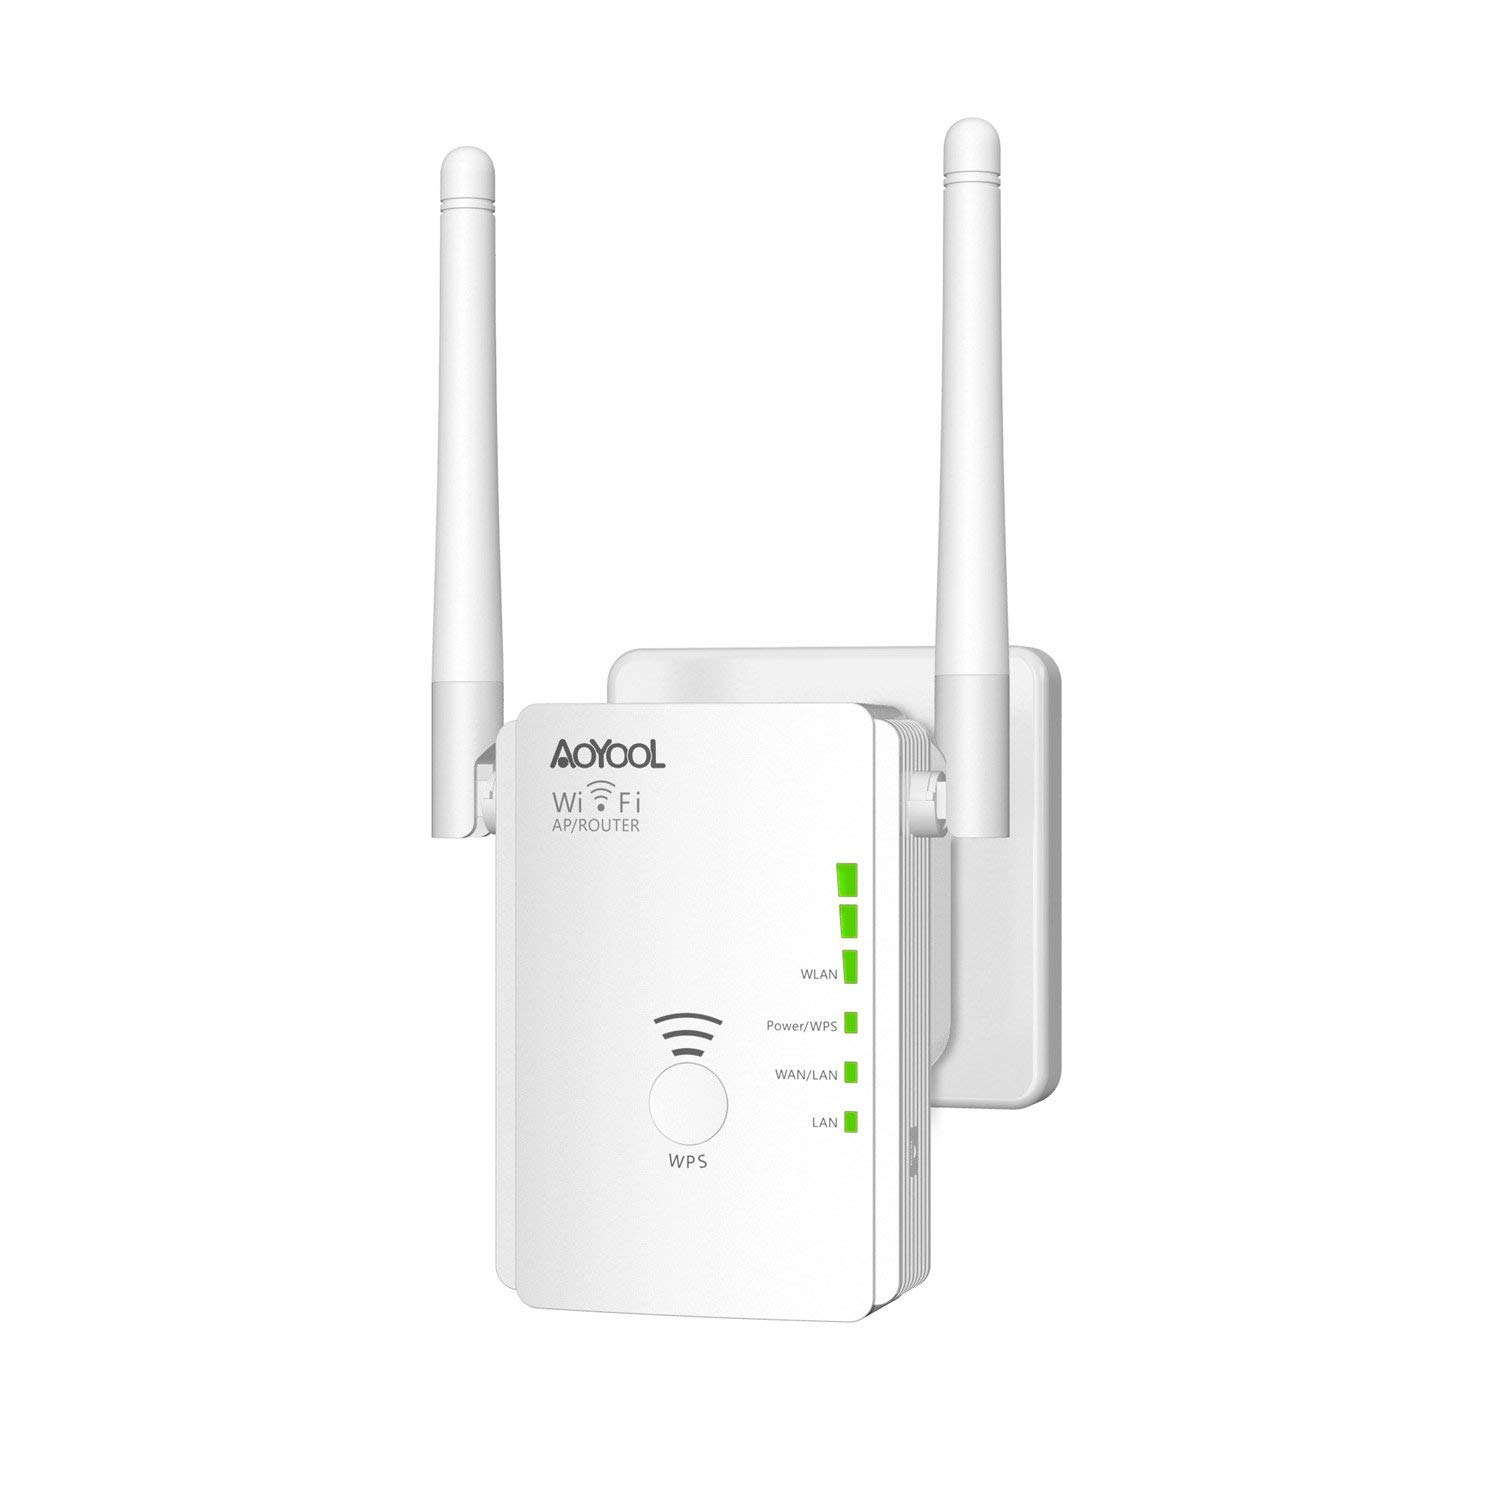 Cheap Ac Wifi Devices, find Ac Wifi Devices deals on line at